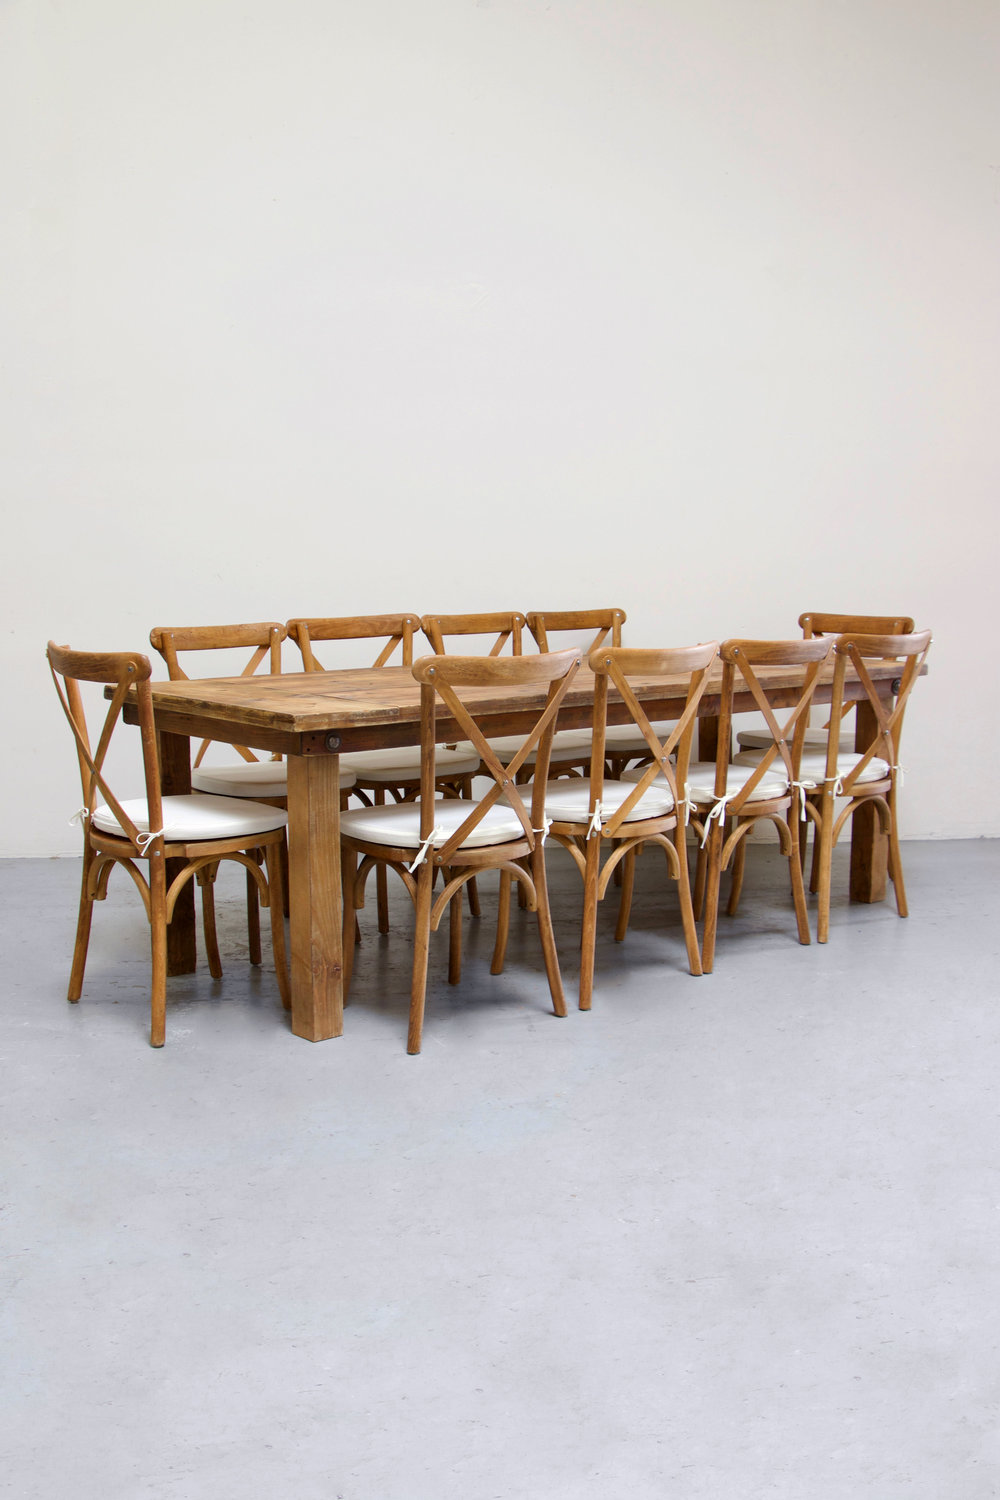 1 Honey Brown Farm Table w/ 10 Cross-Back Chairs $160